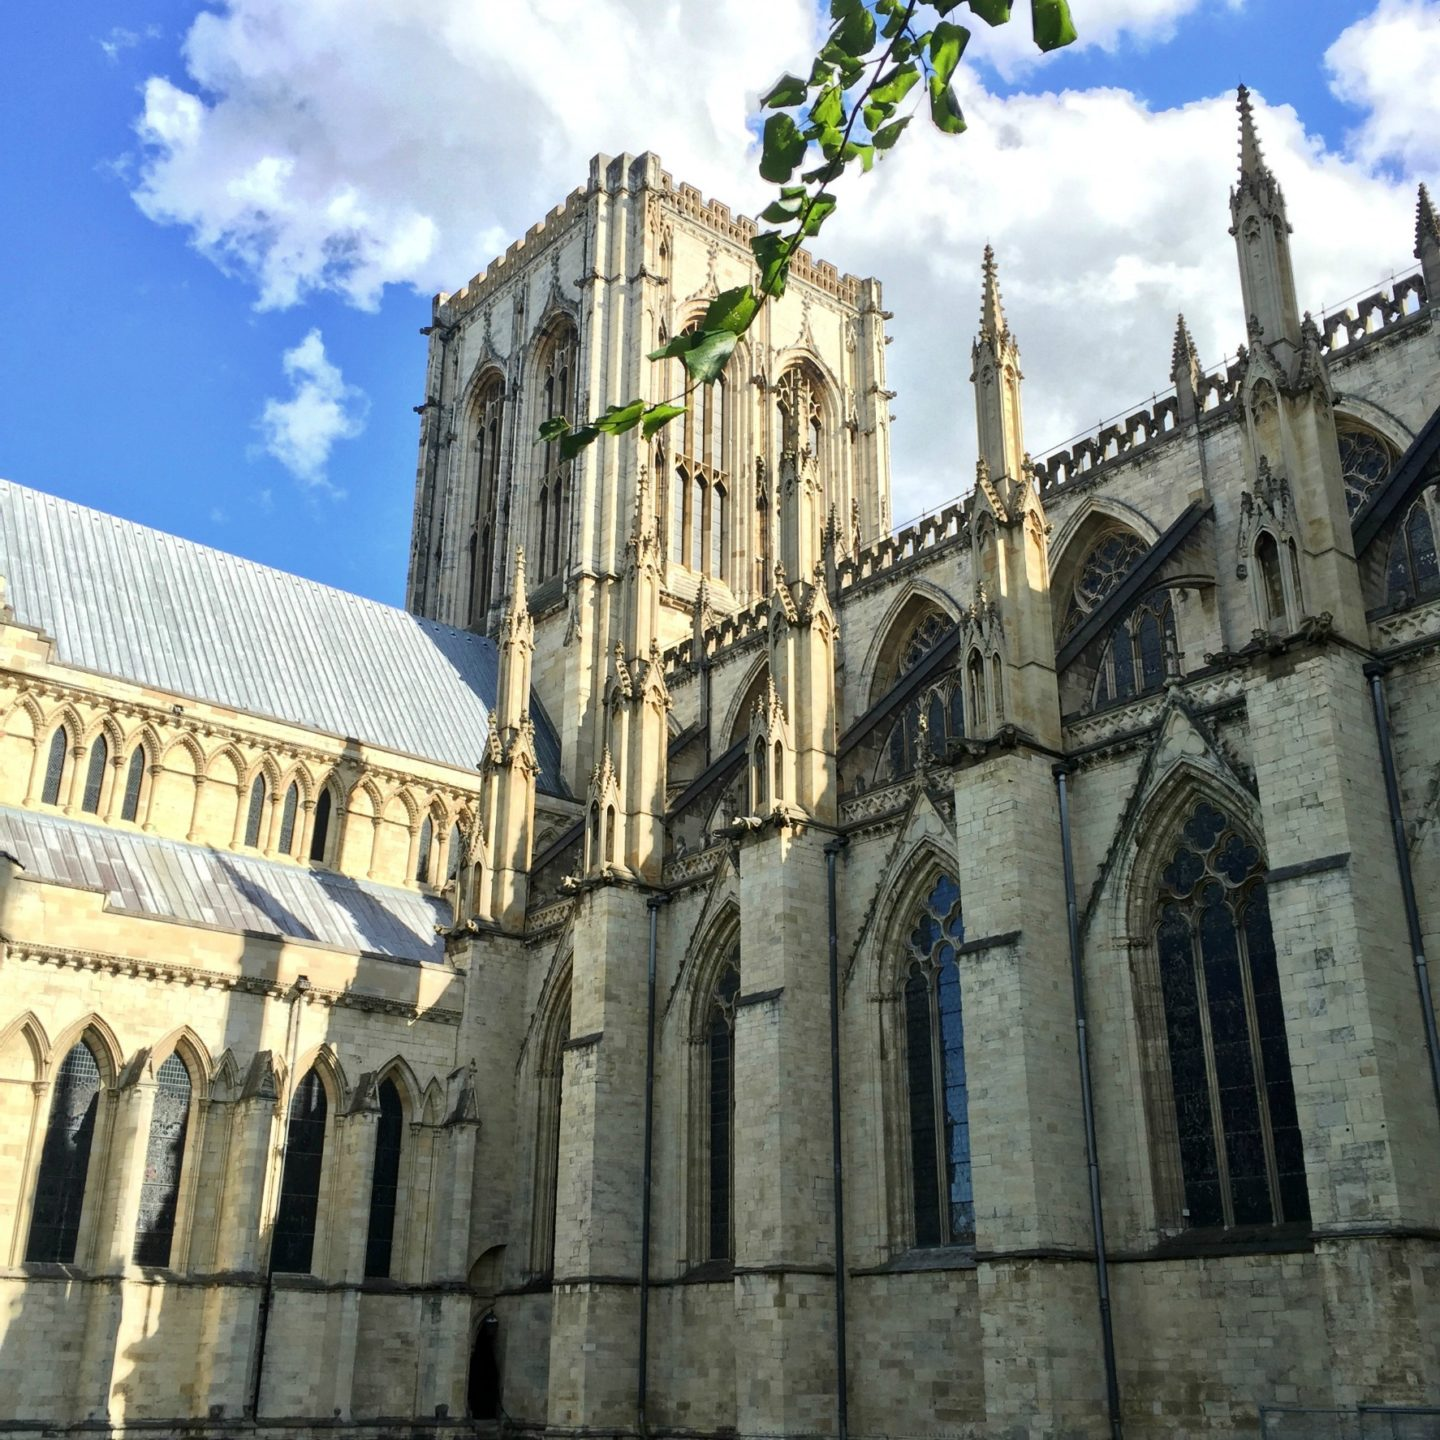 Visit to city of York